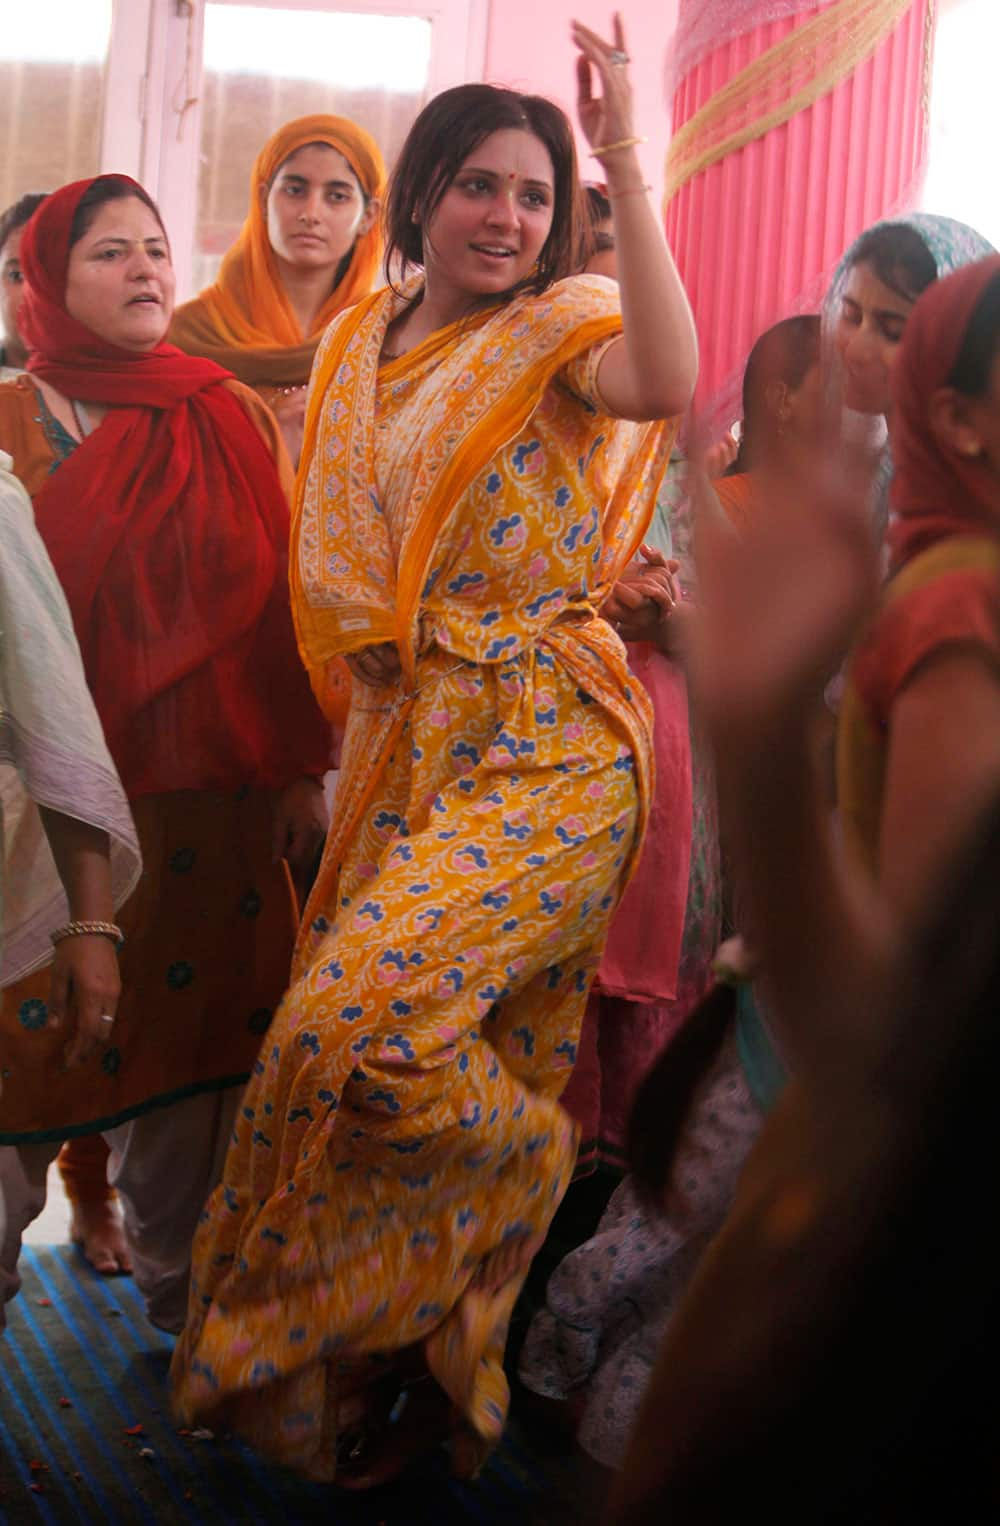 Devotees dance as they worship Lord Krishna as part of Janamashtami celebrations at the ISKON temple in Jammu, India.